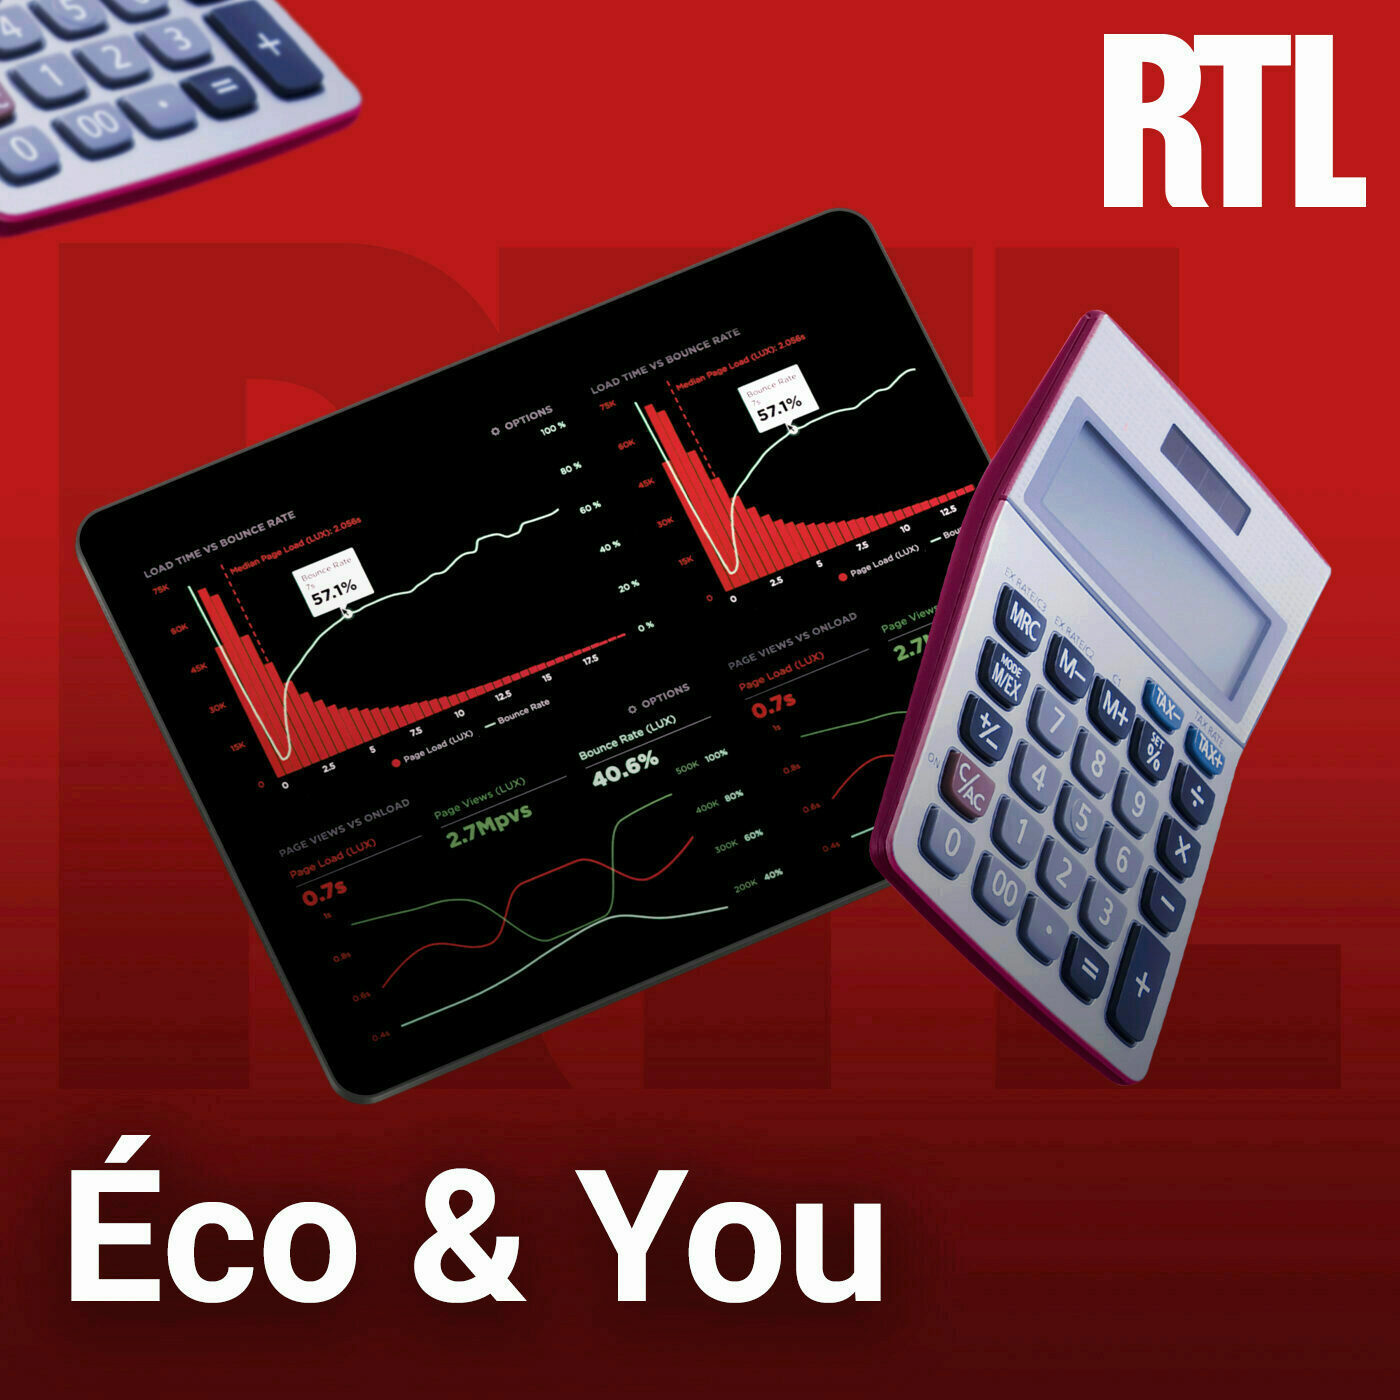 Image 1: L eco and You